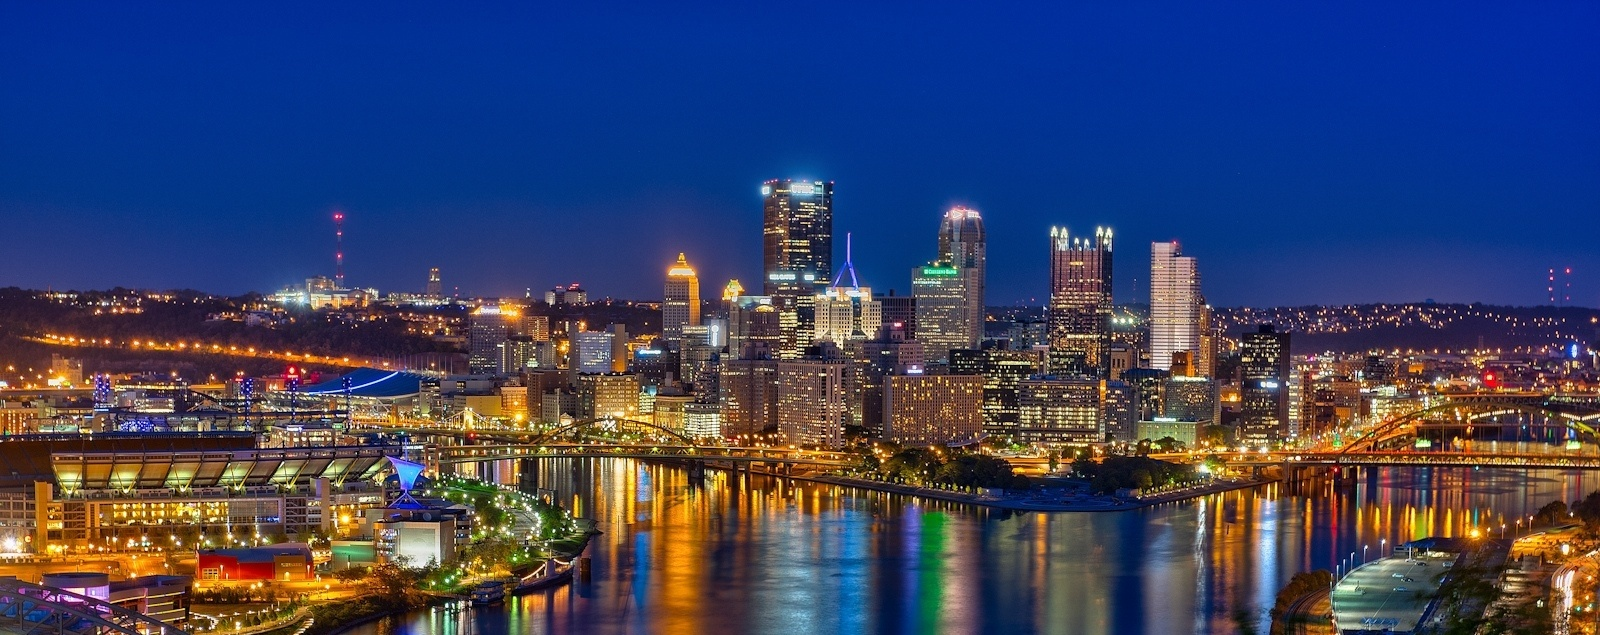 MatthewPaulson-Pittsburgh-night-385581-edited.jpg